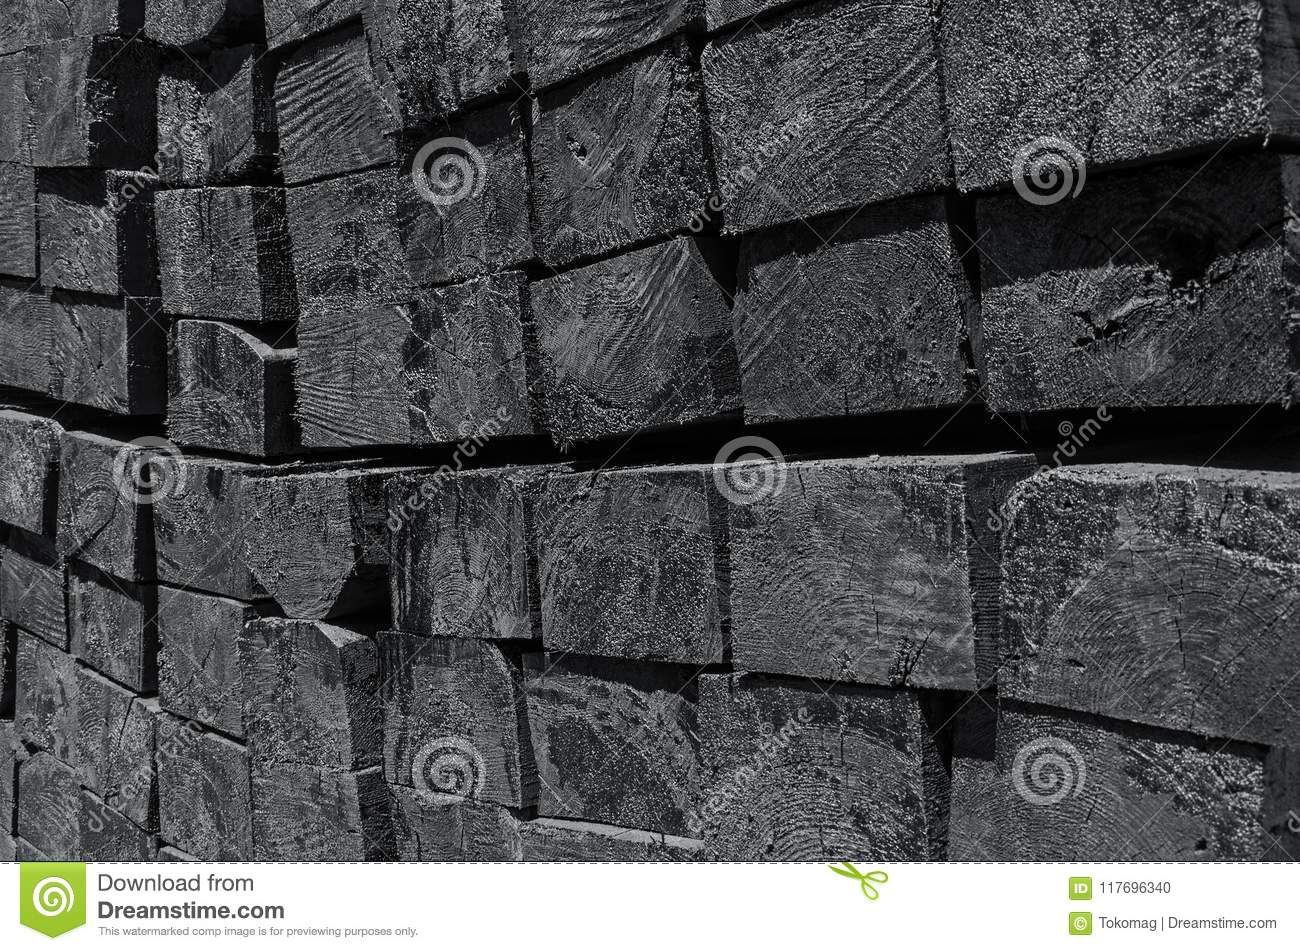 Wooden railroad tie stock photo  Image of lumber, creosote - 117696340